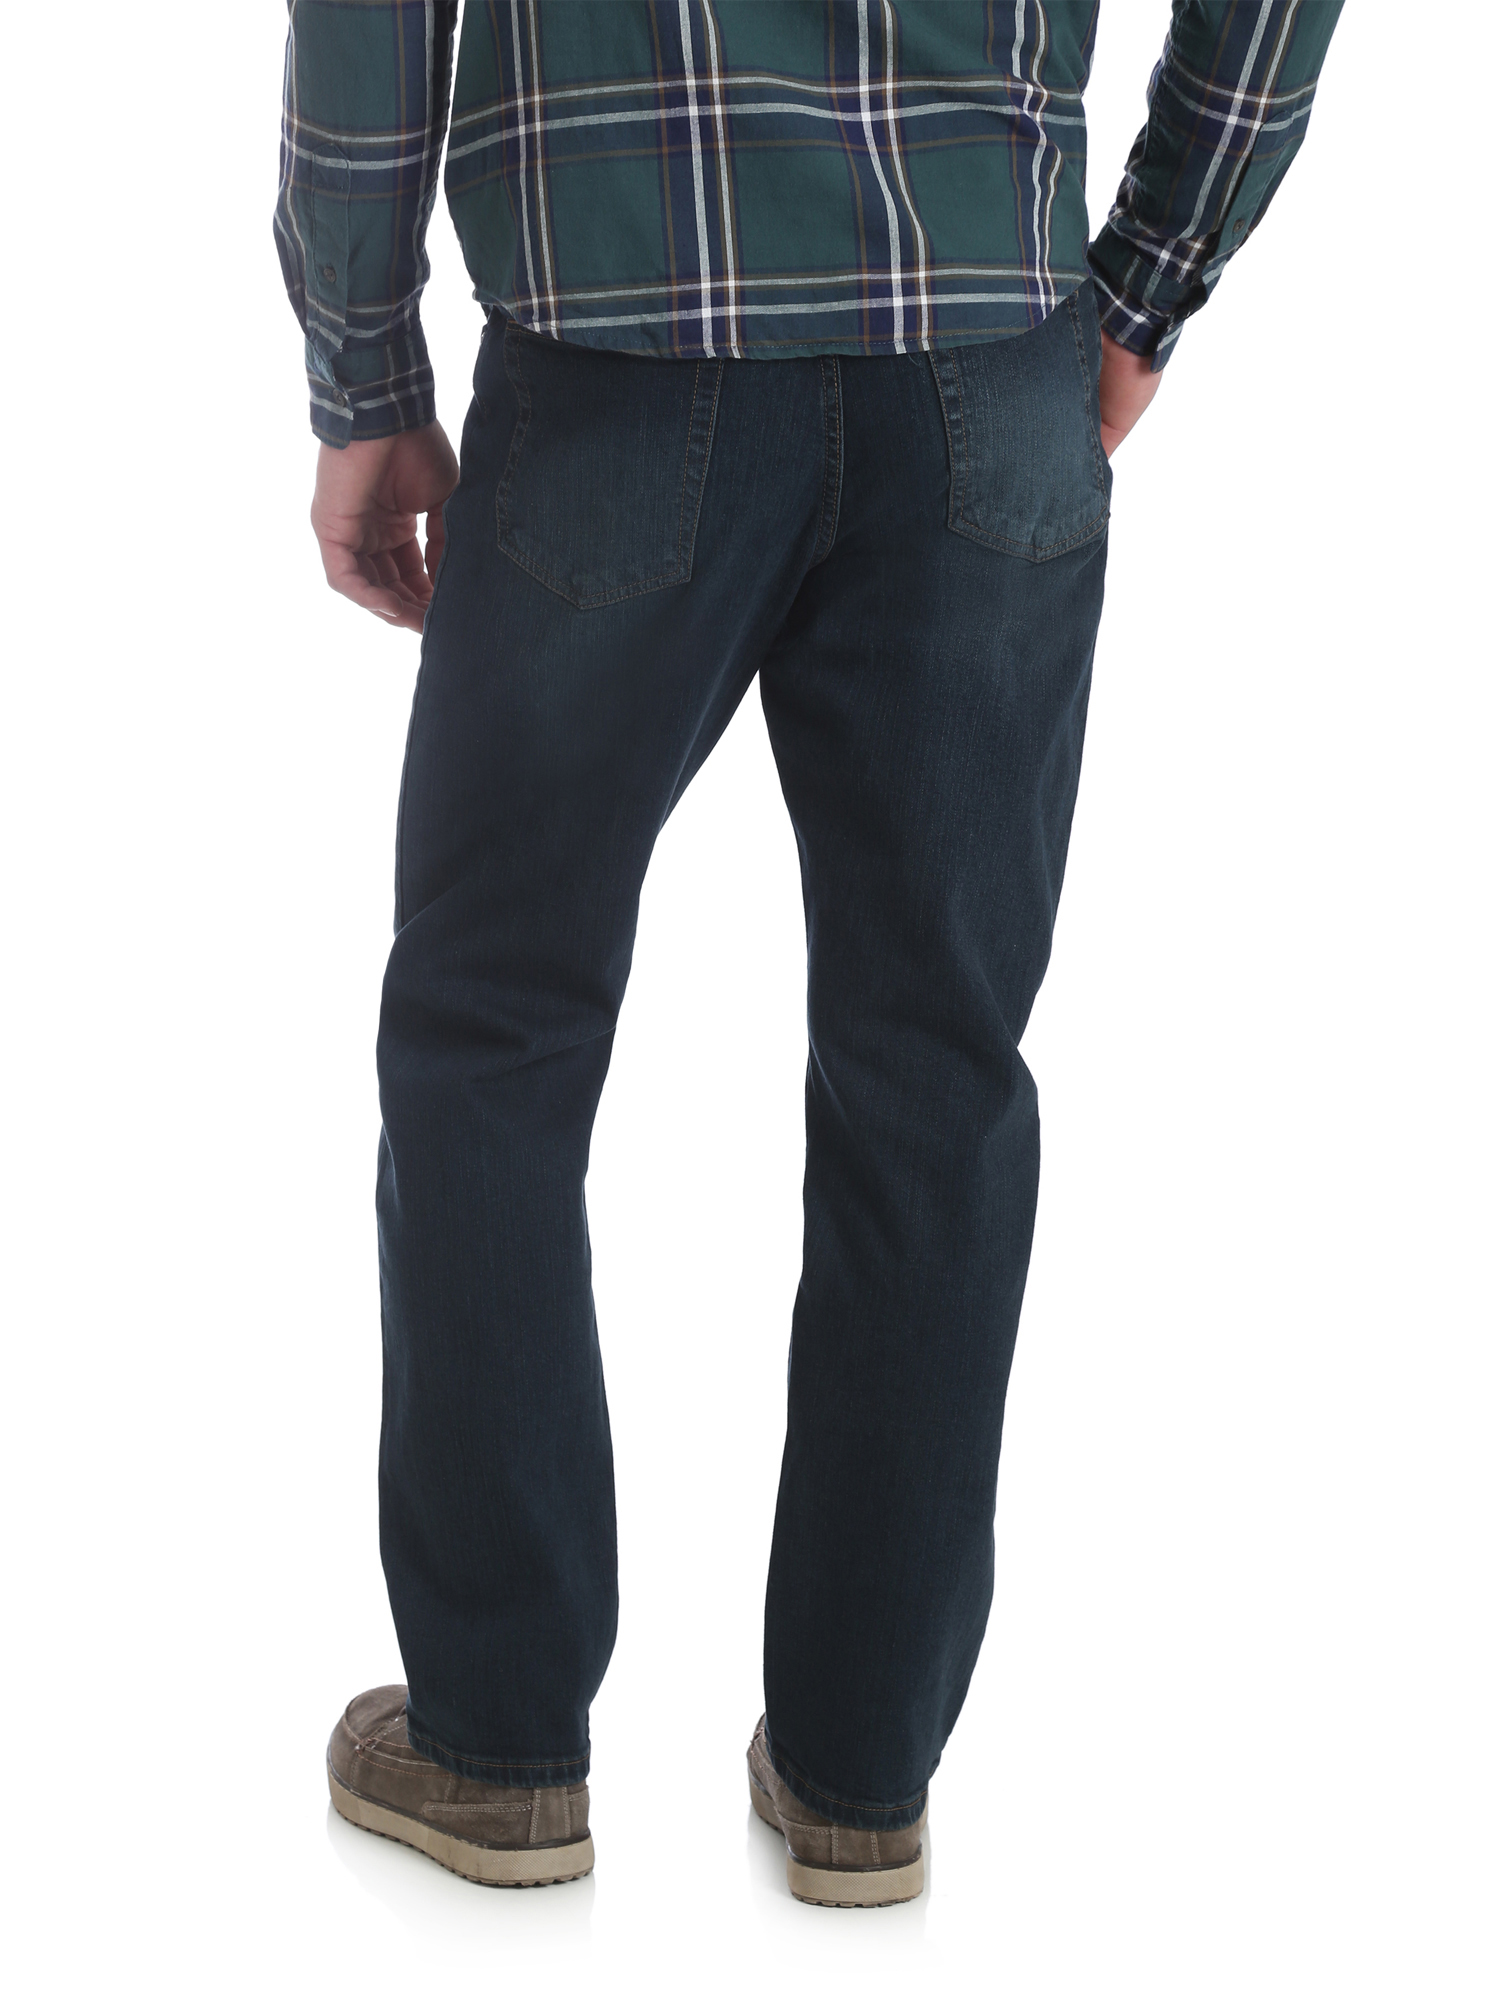 5d709471d929 Wrangler - Wrangler Men s 5 Star Relaxed Fit Jean with Flex - Walmart.com